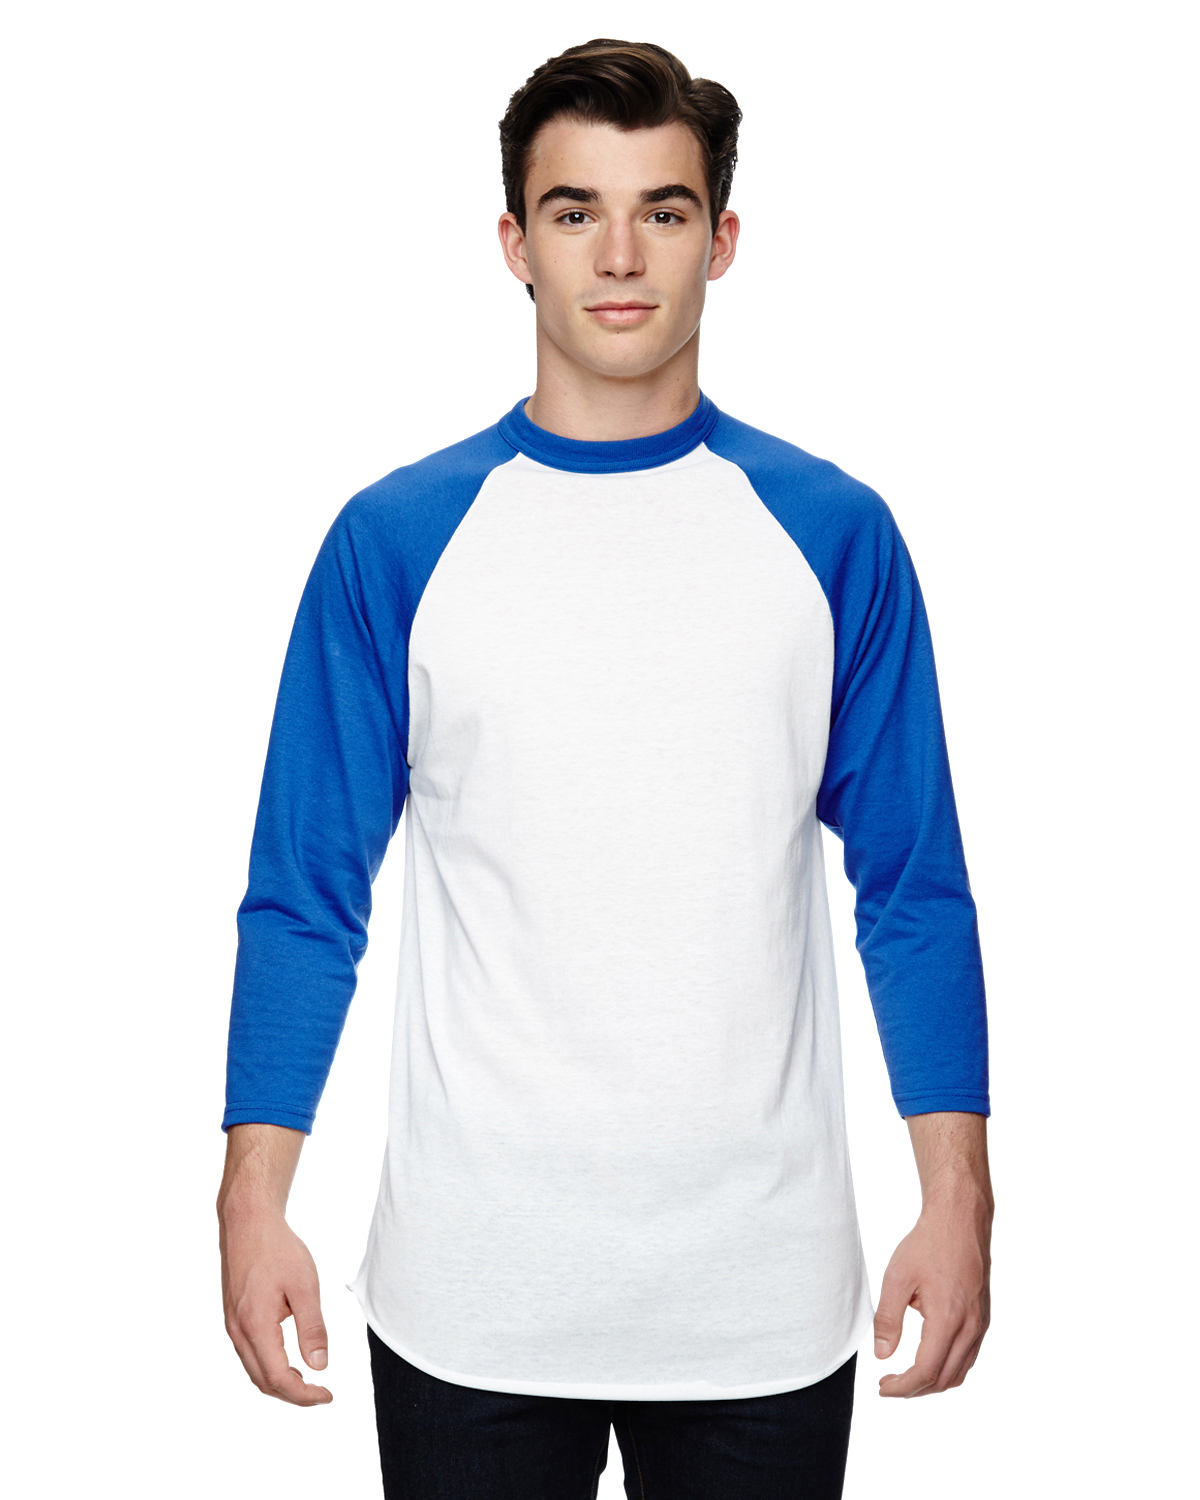 Shop men's Long Sleeve t-shirts from a great selection of comfortable and quality t-shirts today! Free shipping with online orders over $60 Message Dialog This area is to show errors (if any) caused due to user input/ or system errors.